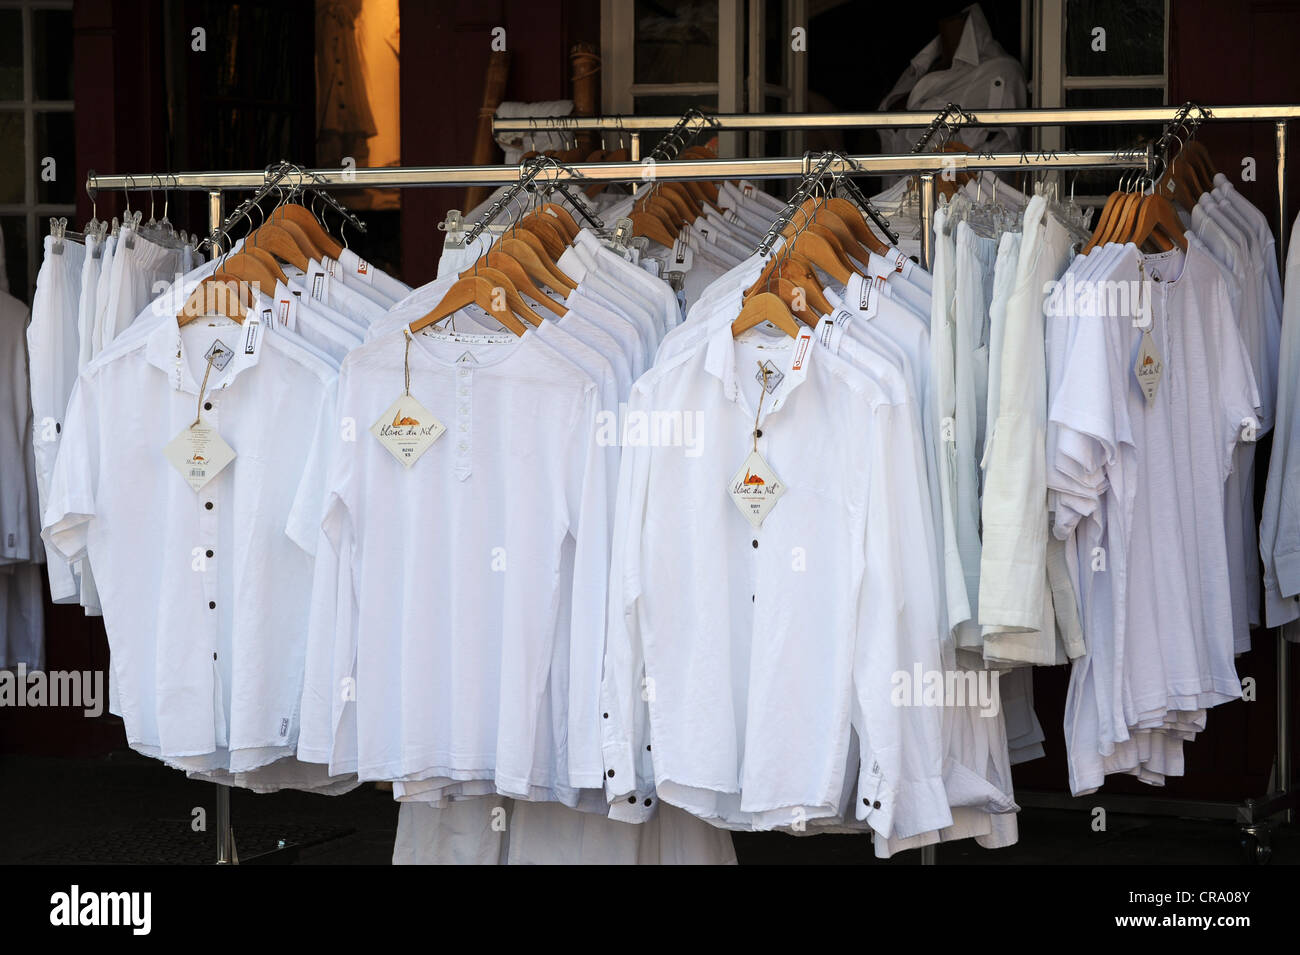 All white shirts on sale 'Blanc du Nil' Stock Photo, Royalty Free ...